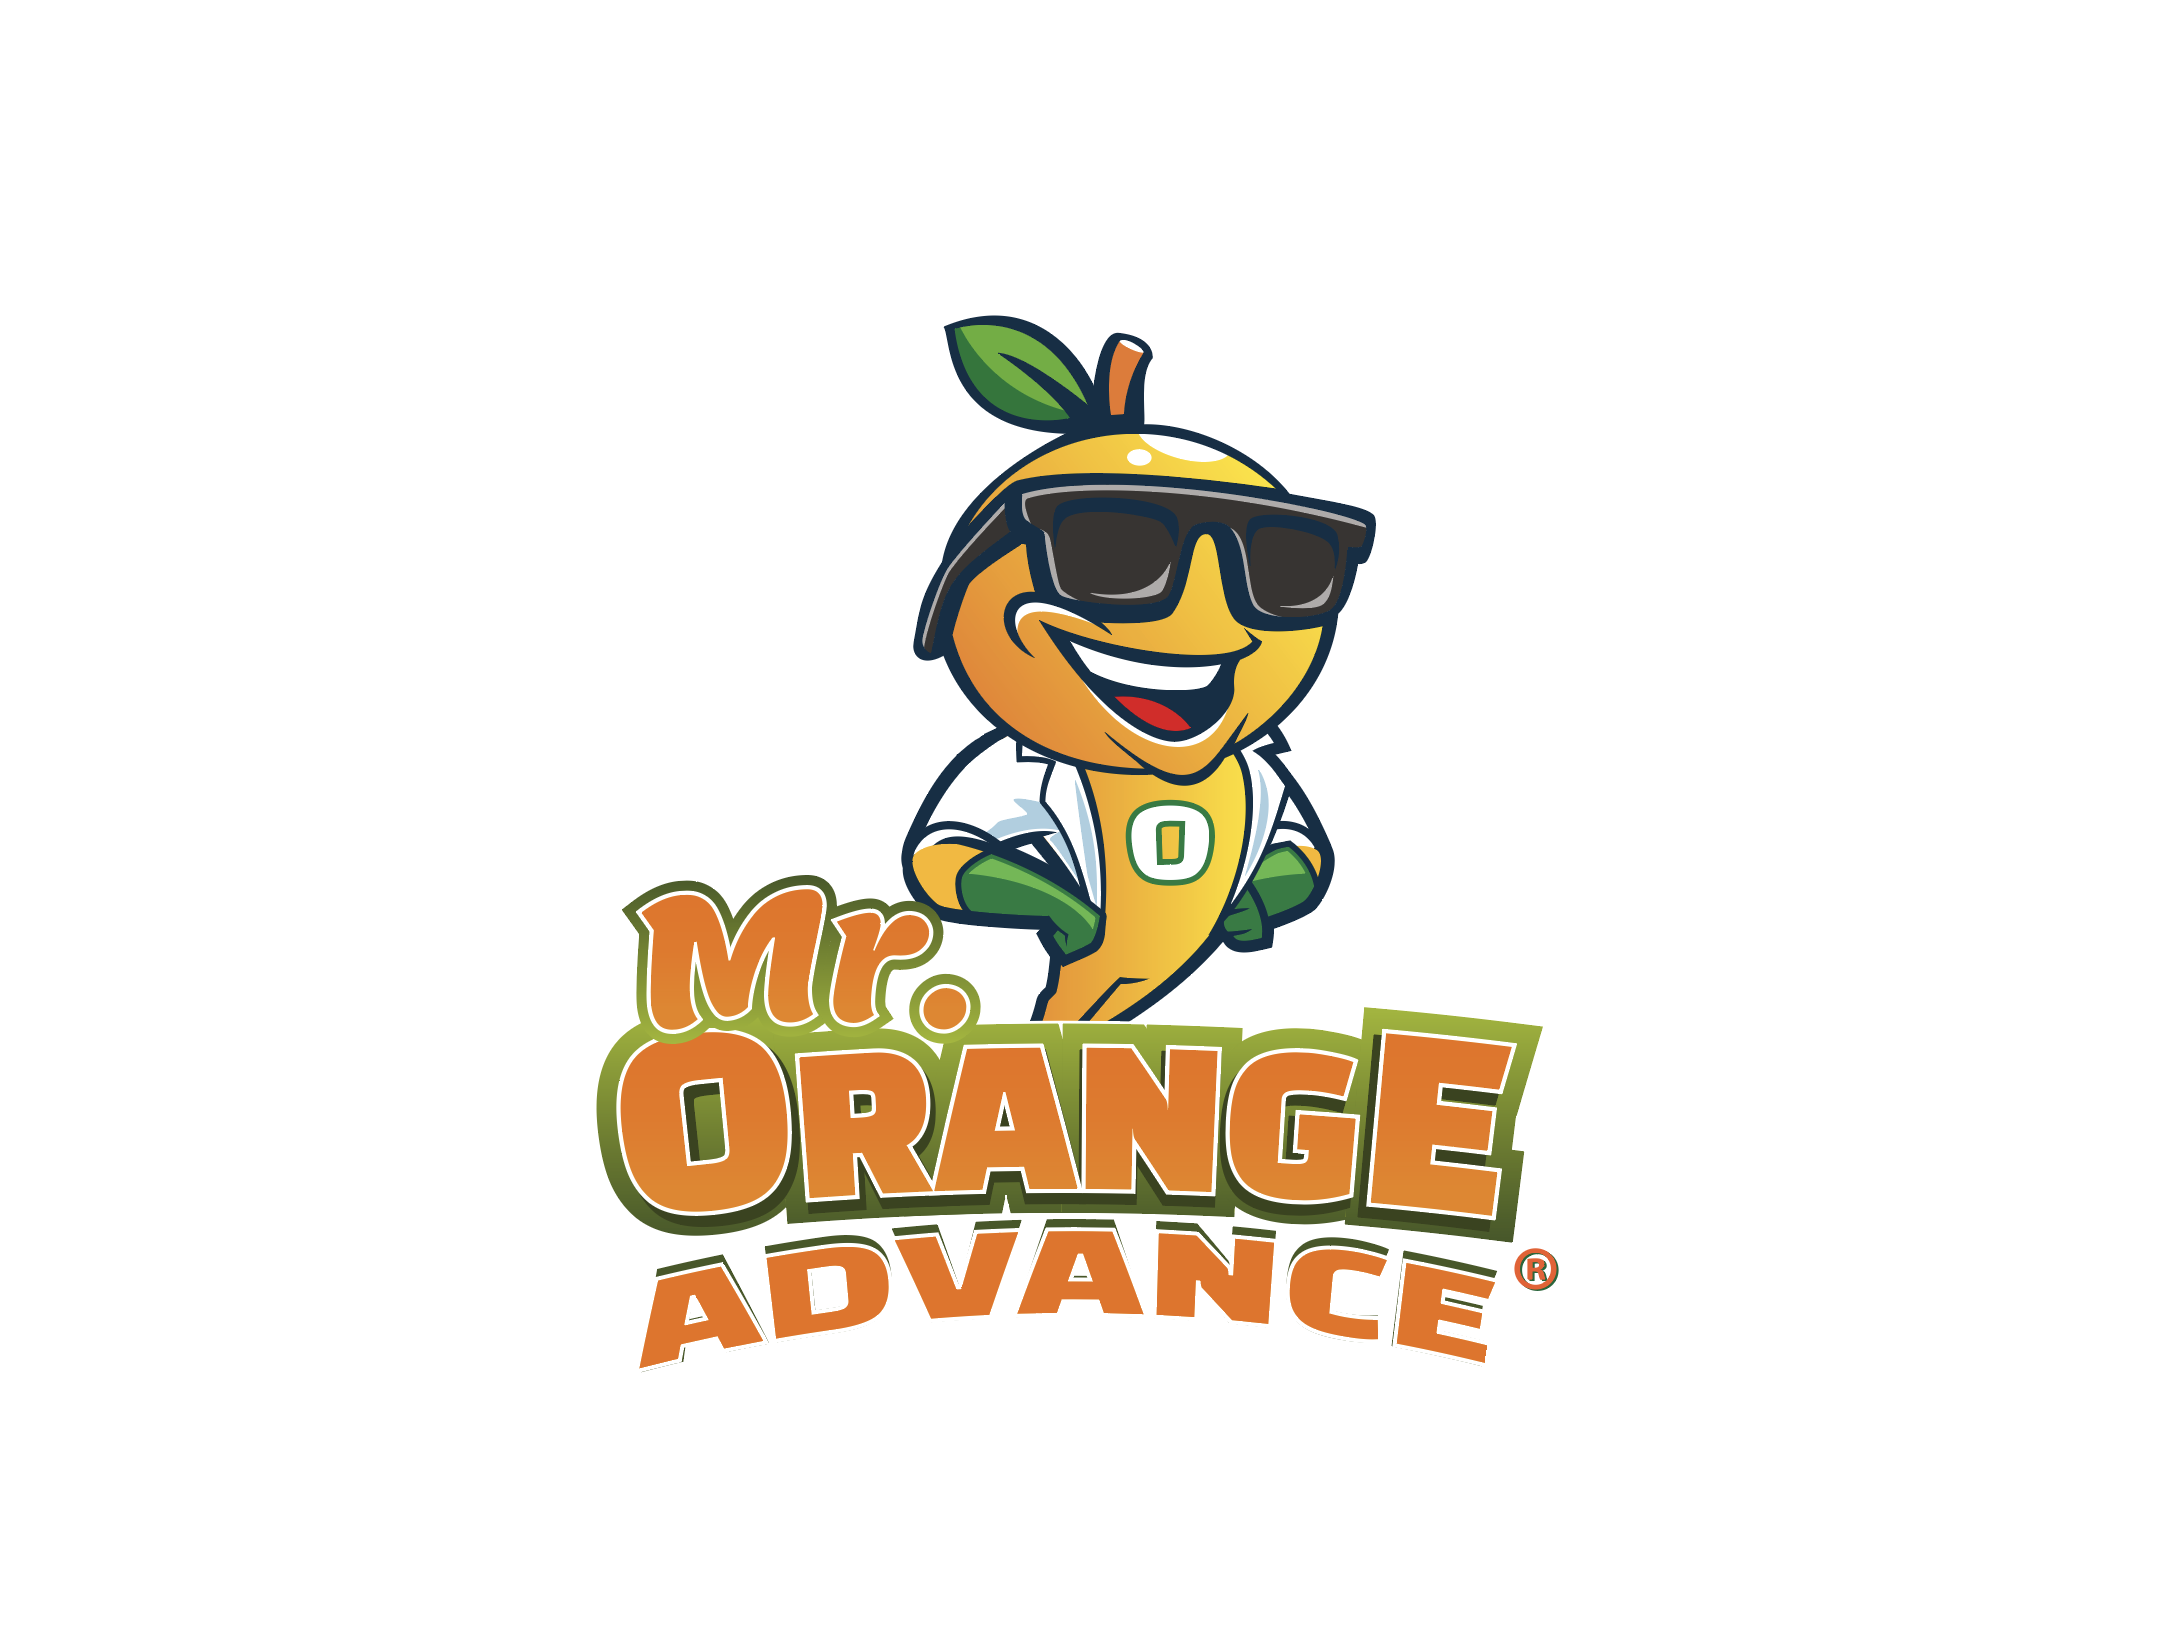 Mr. Orange Advance Cleaning Products